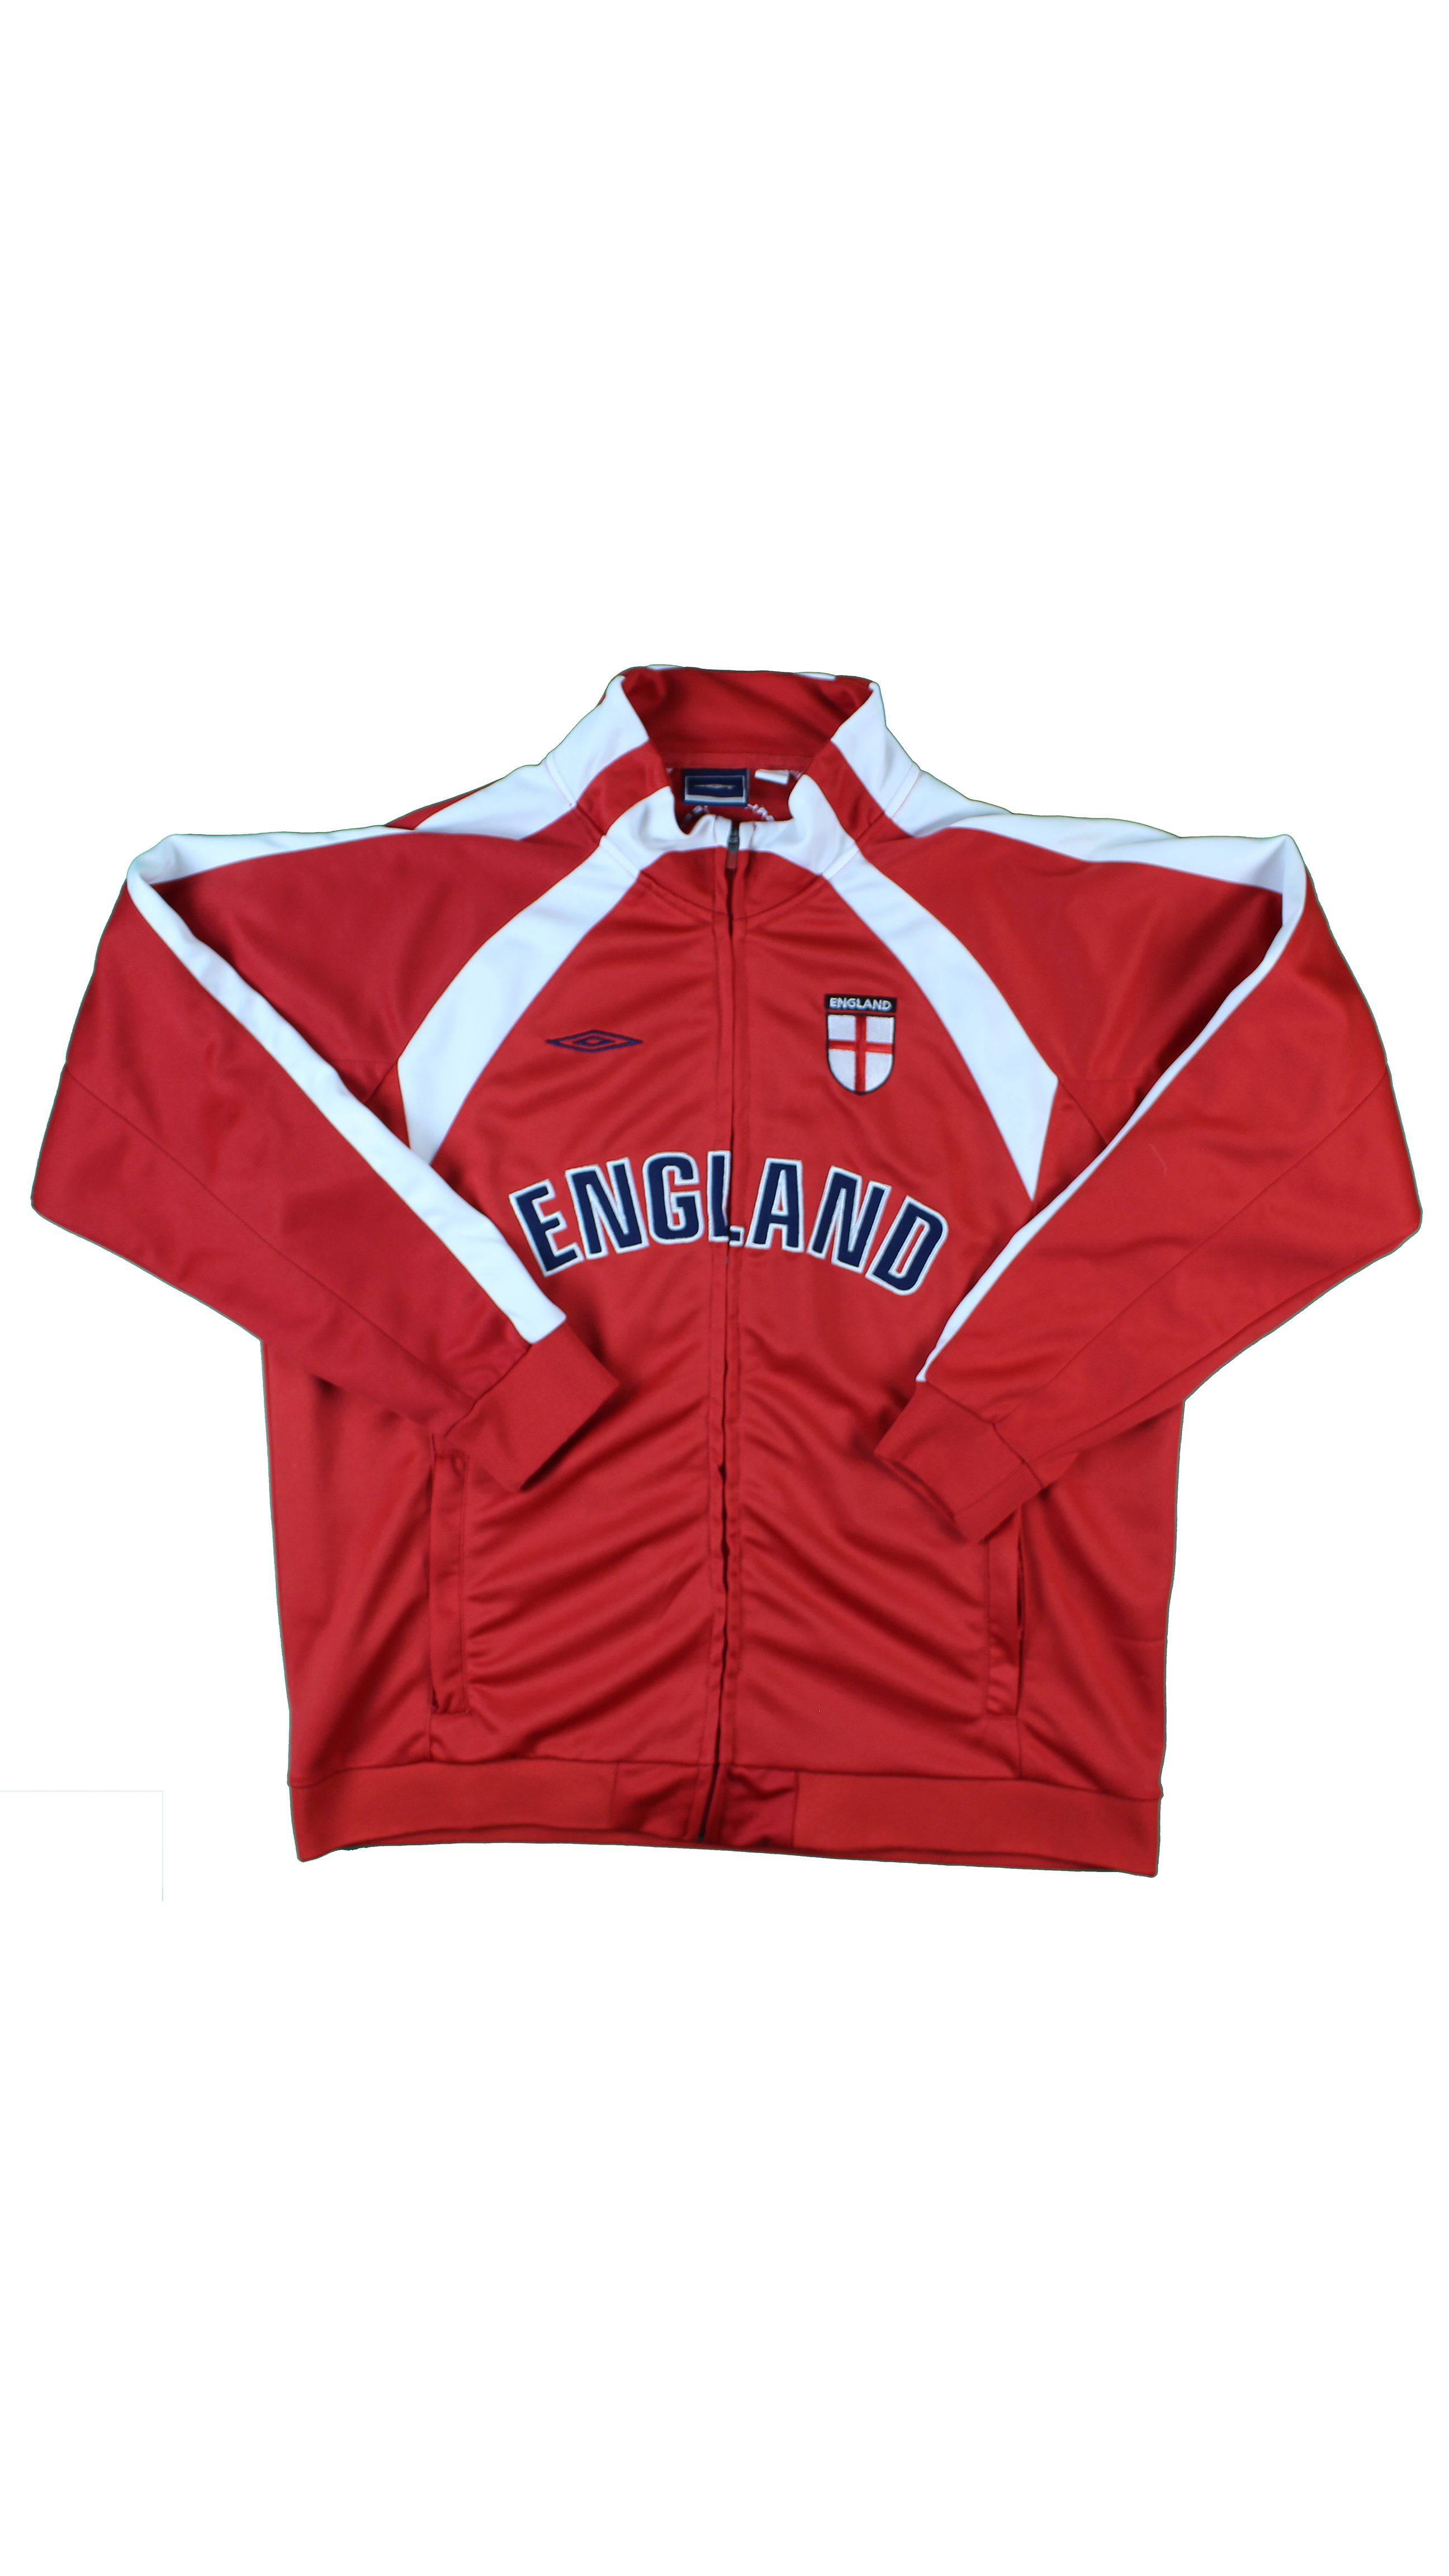 b99d0aba72 Vintage Umbro Red Athletic Team England Soccer All Embroidered Logo ...